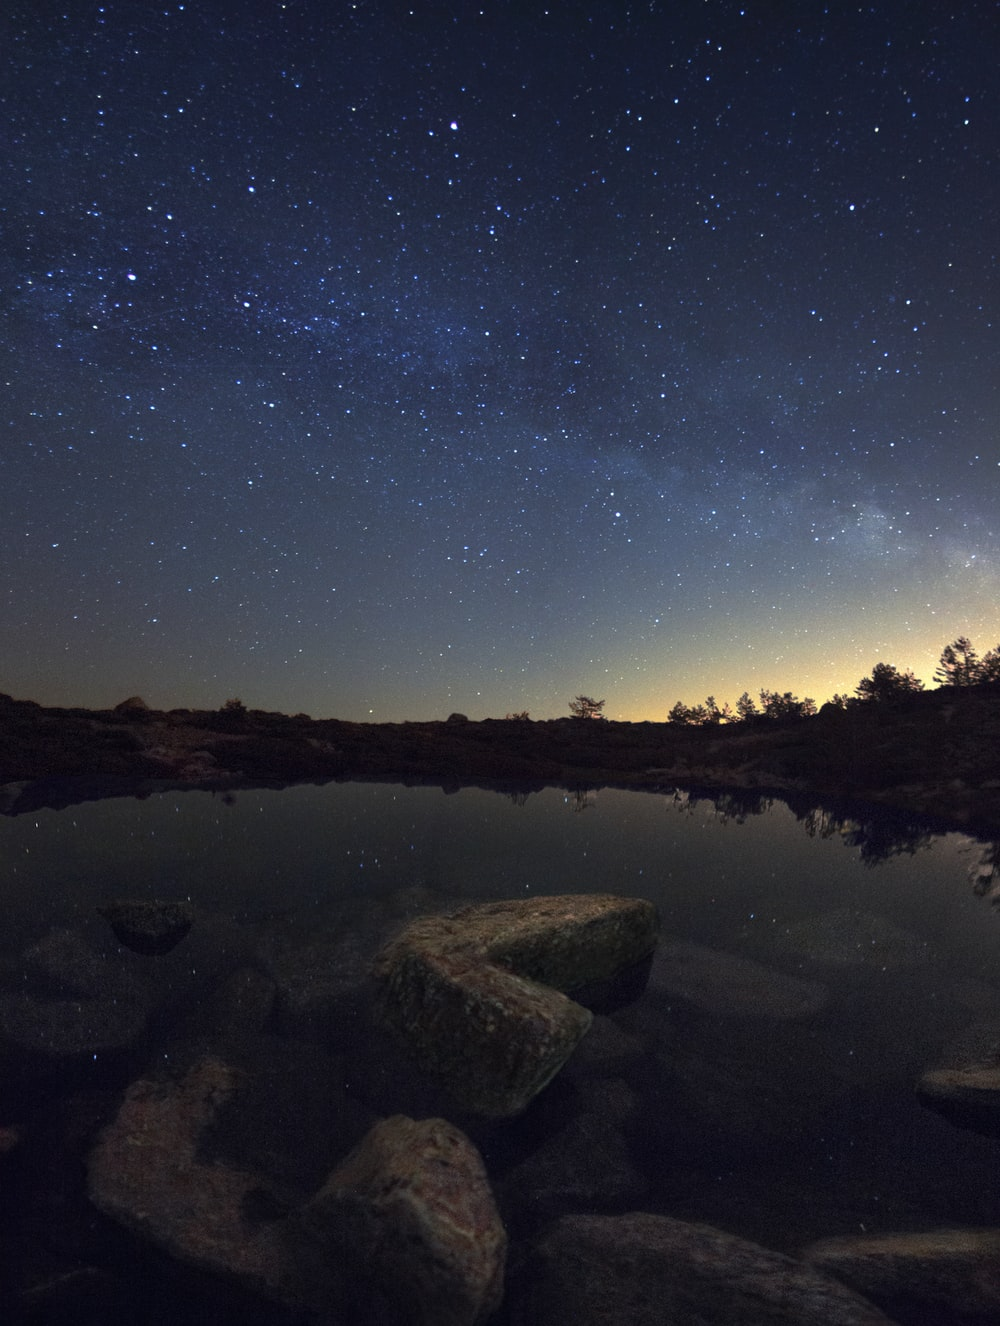 body of water and stone at nighttime photo